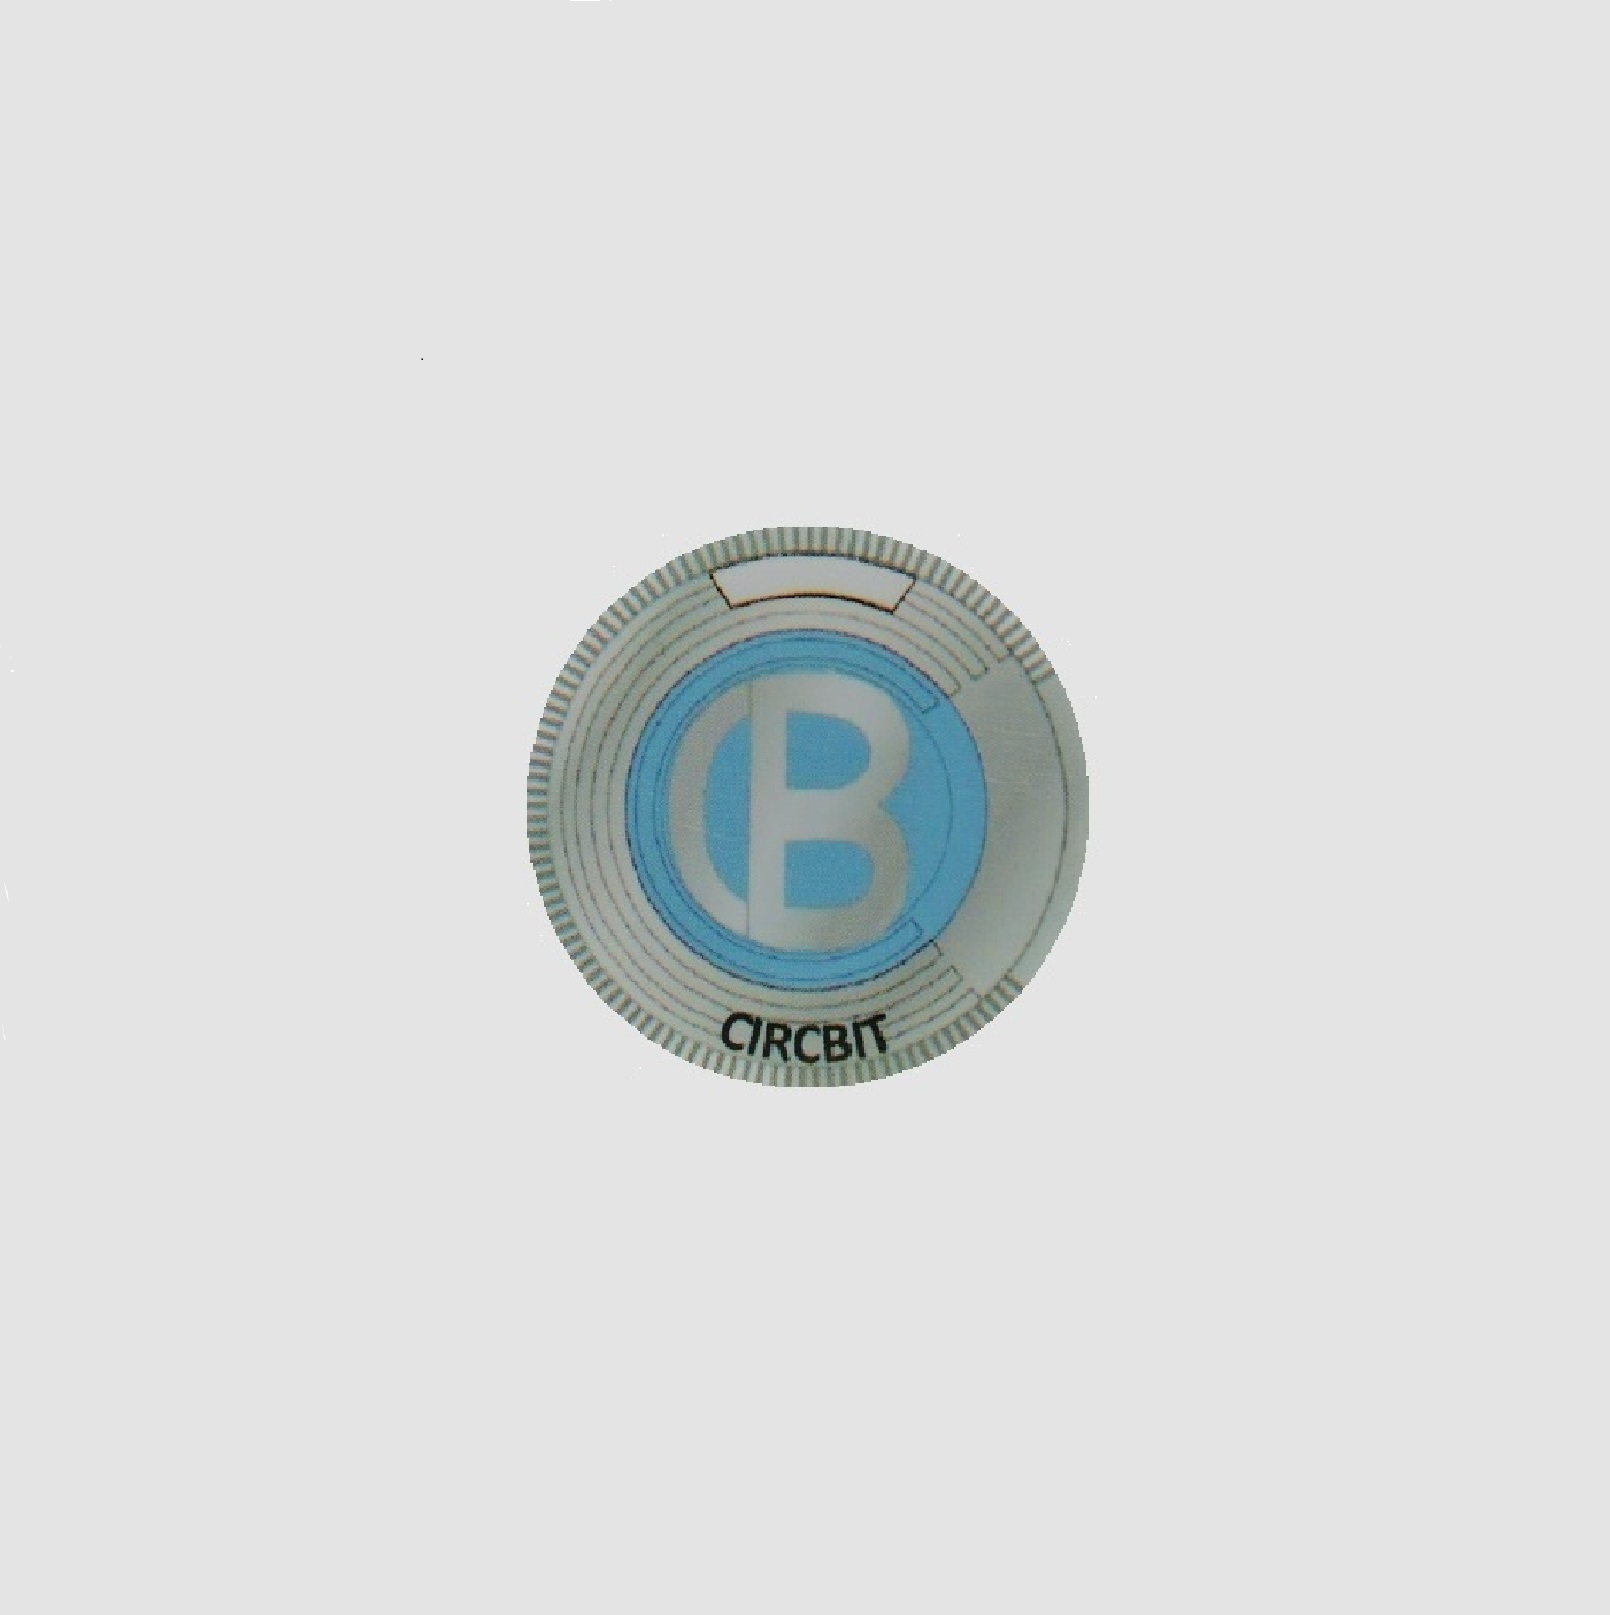 CircBit Sticker Small